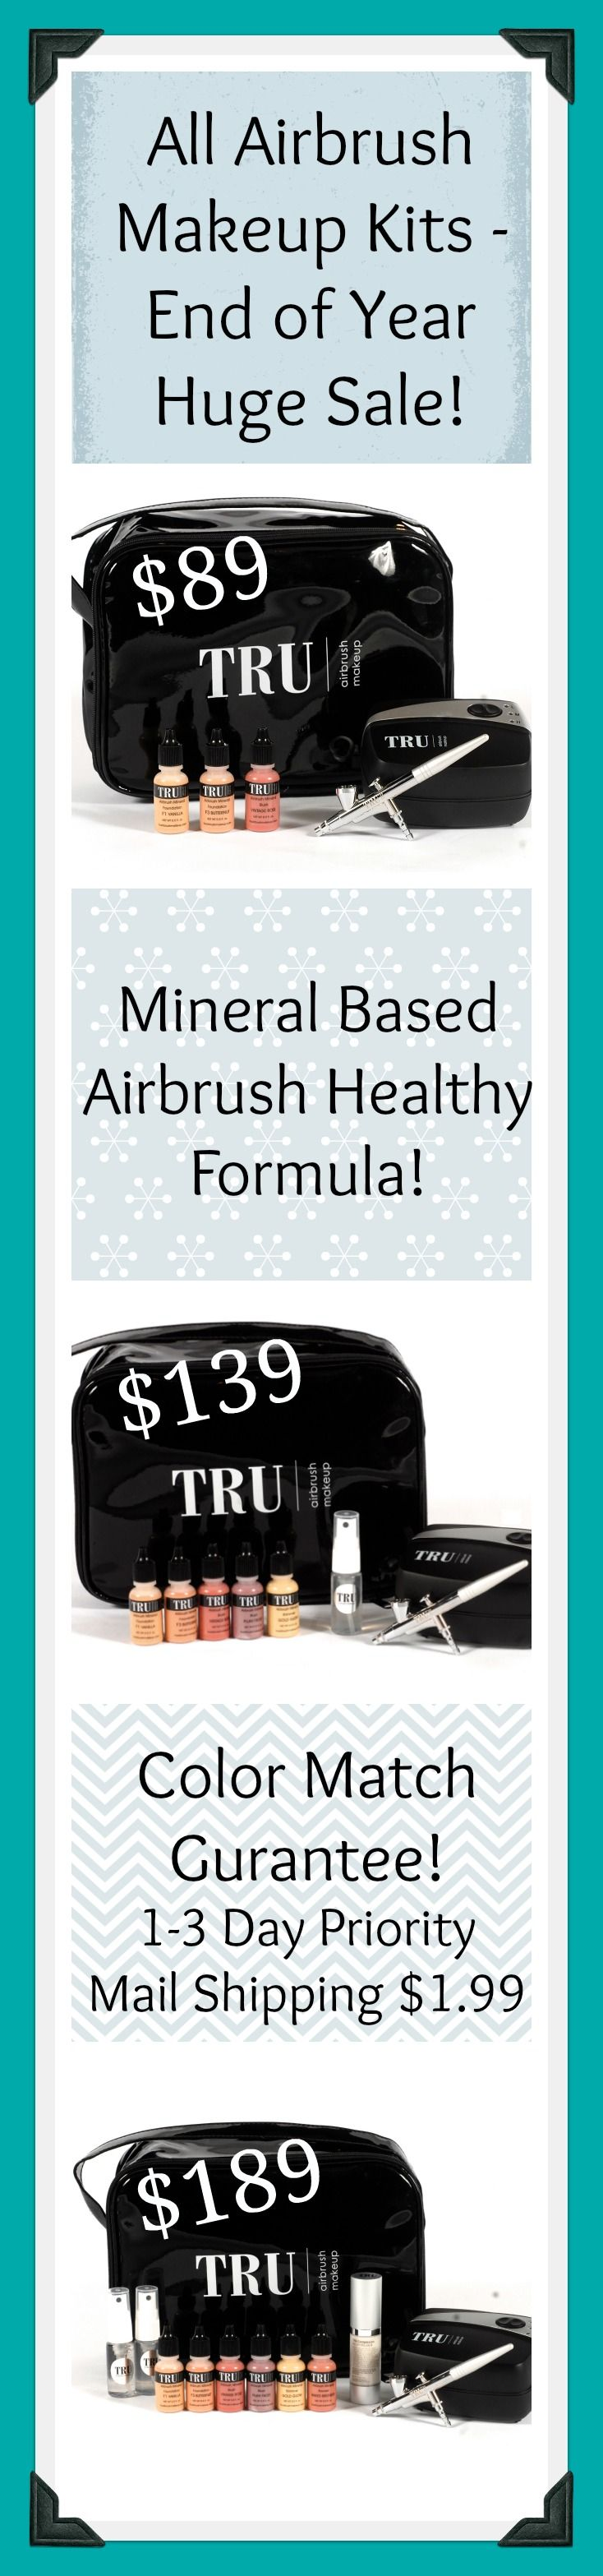 Pin by TRU Airbrush Cosmetics on Airbrush Makeup Tips